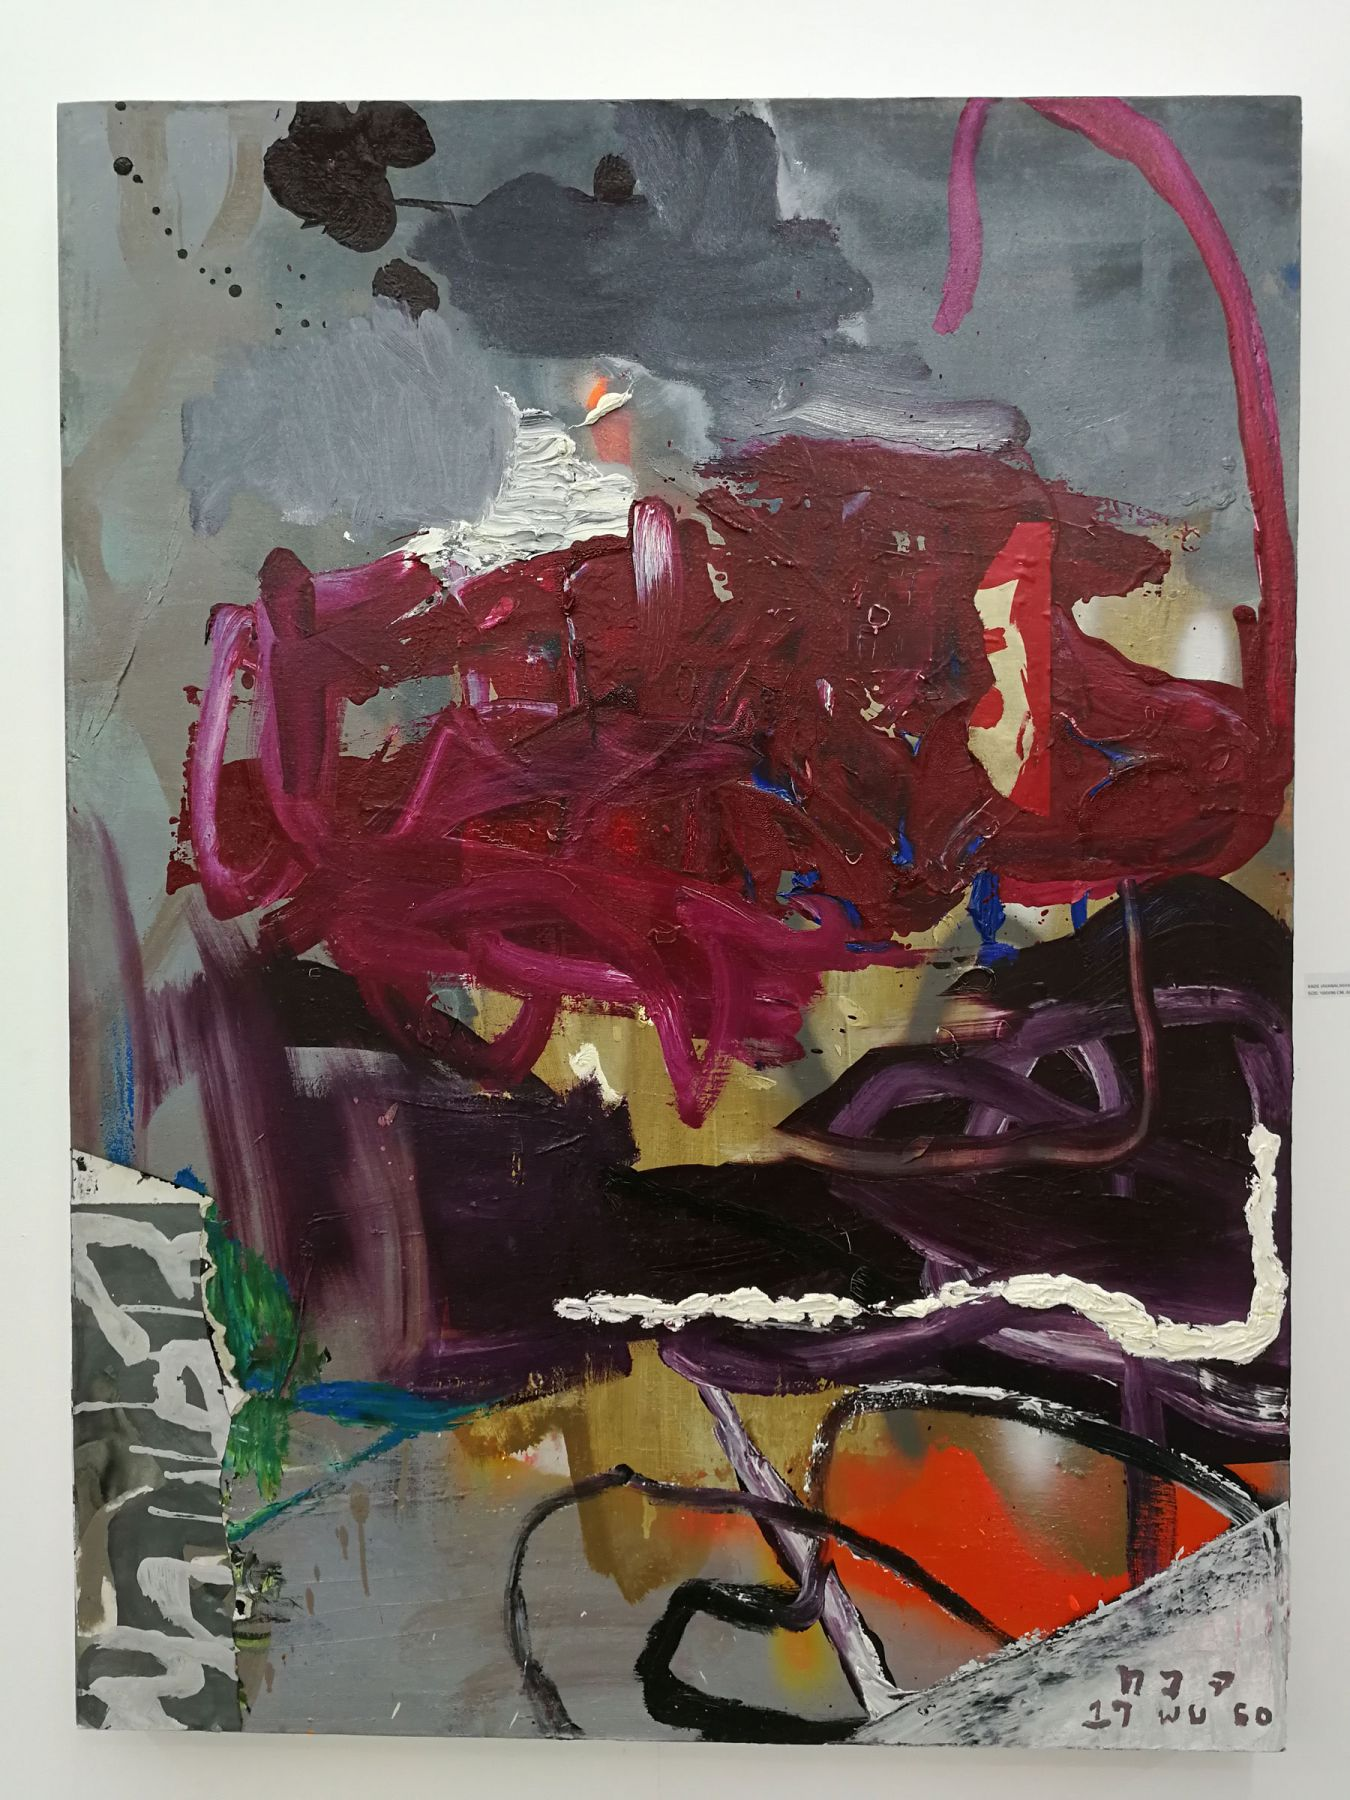 Thaiwijit Puengkasemsomboon Untitled (Purples), 2017 oil and spray paint on canvas 47.2 x 35.4 in (120 x 90 cm)